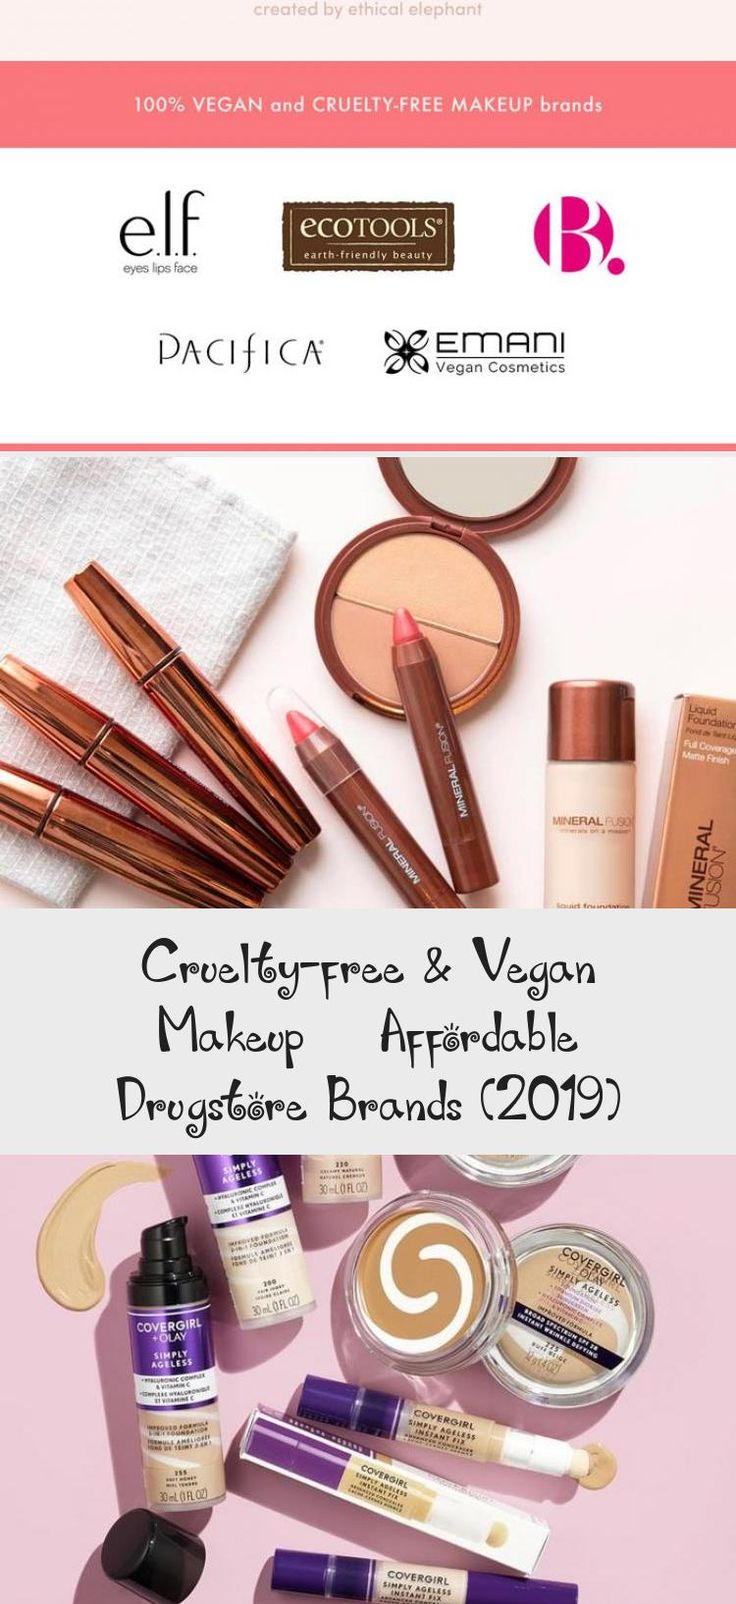 En Blog En Blog in 2020 Cruelty free makeup brands